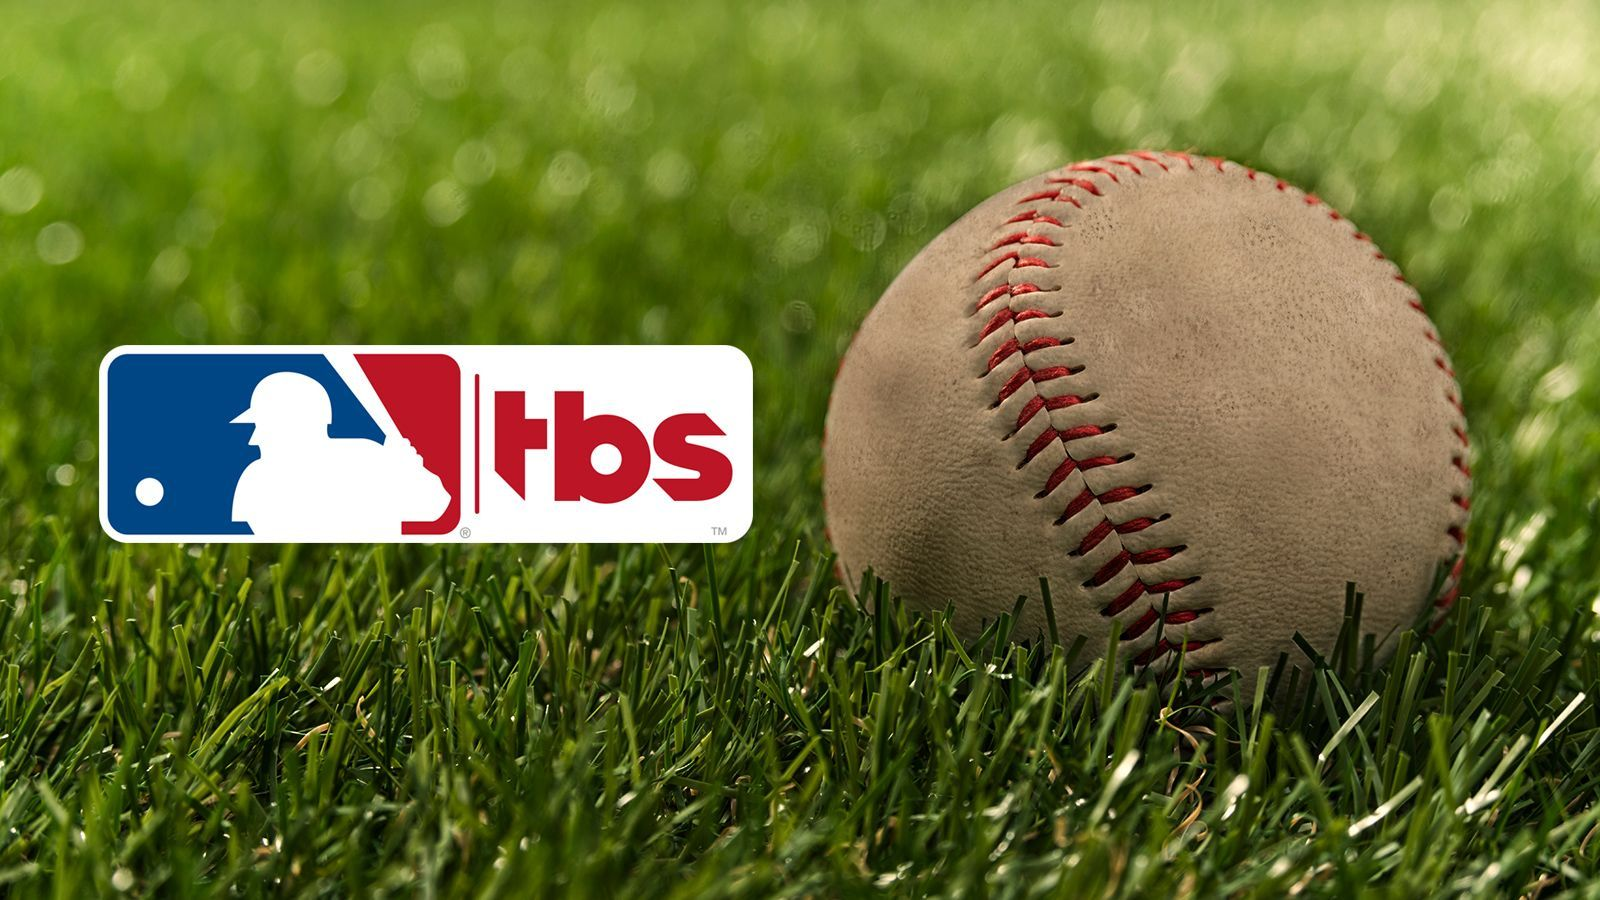 MLB and Turner Broadcasting Systems singed a $3.2 billion deal.